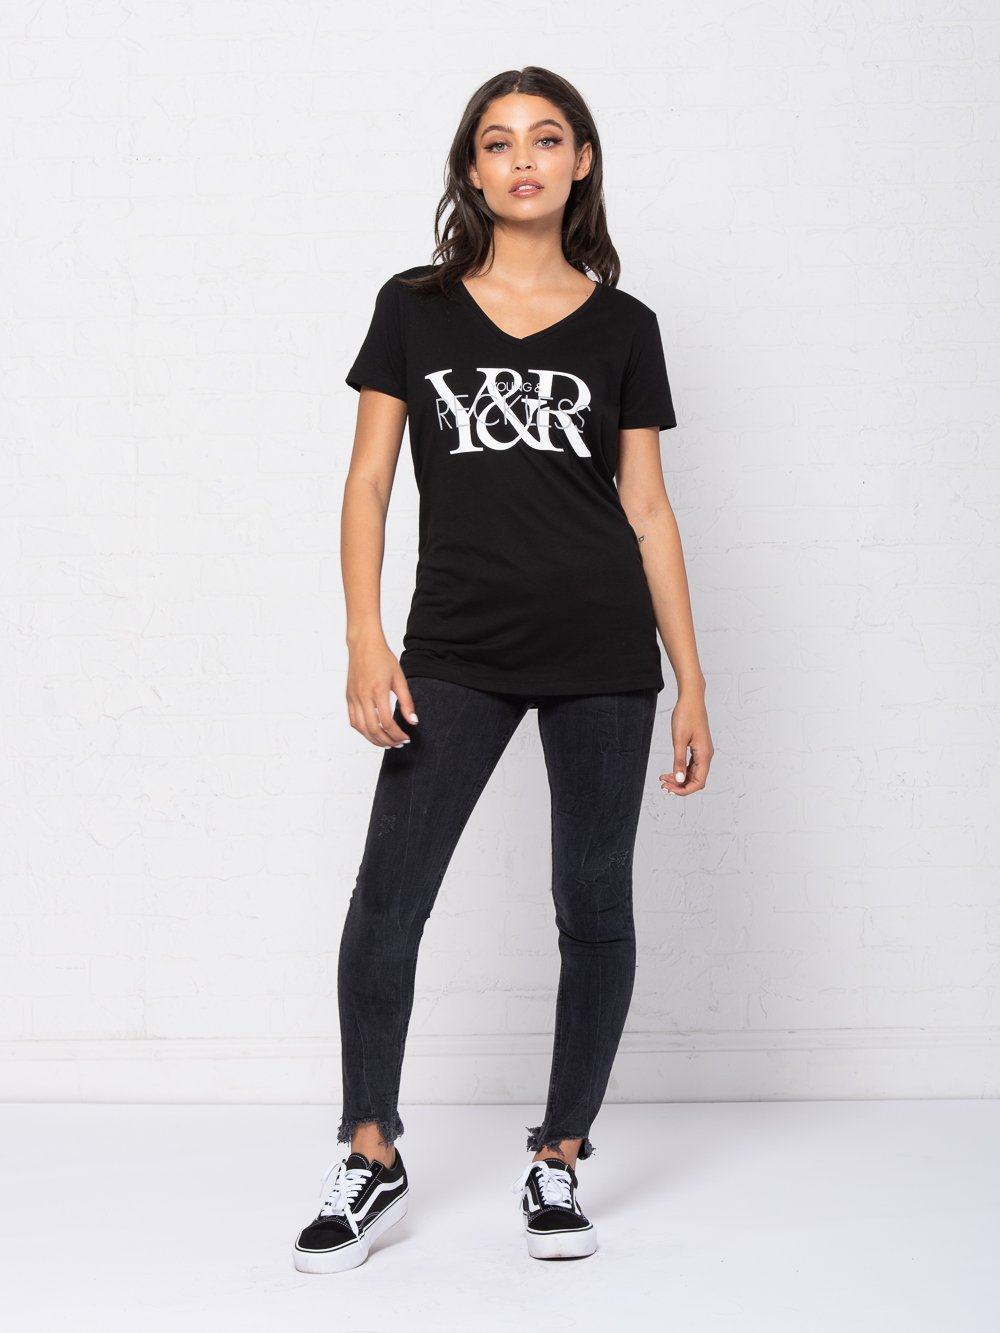 Reckless Girls Womens - Tops - Tees Vintage YR V-Neck Tee - Black